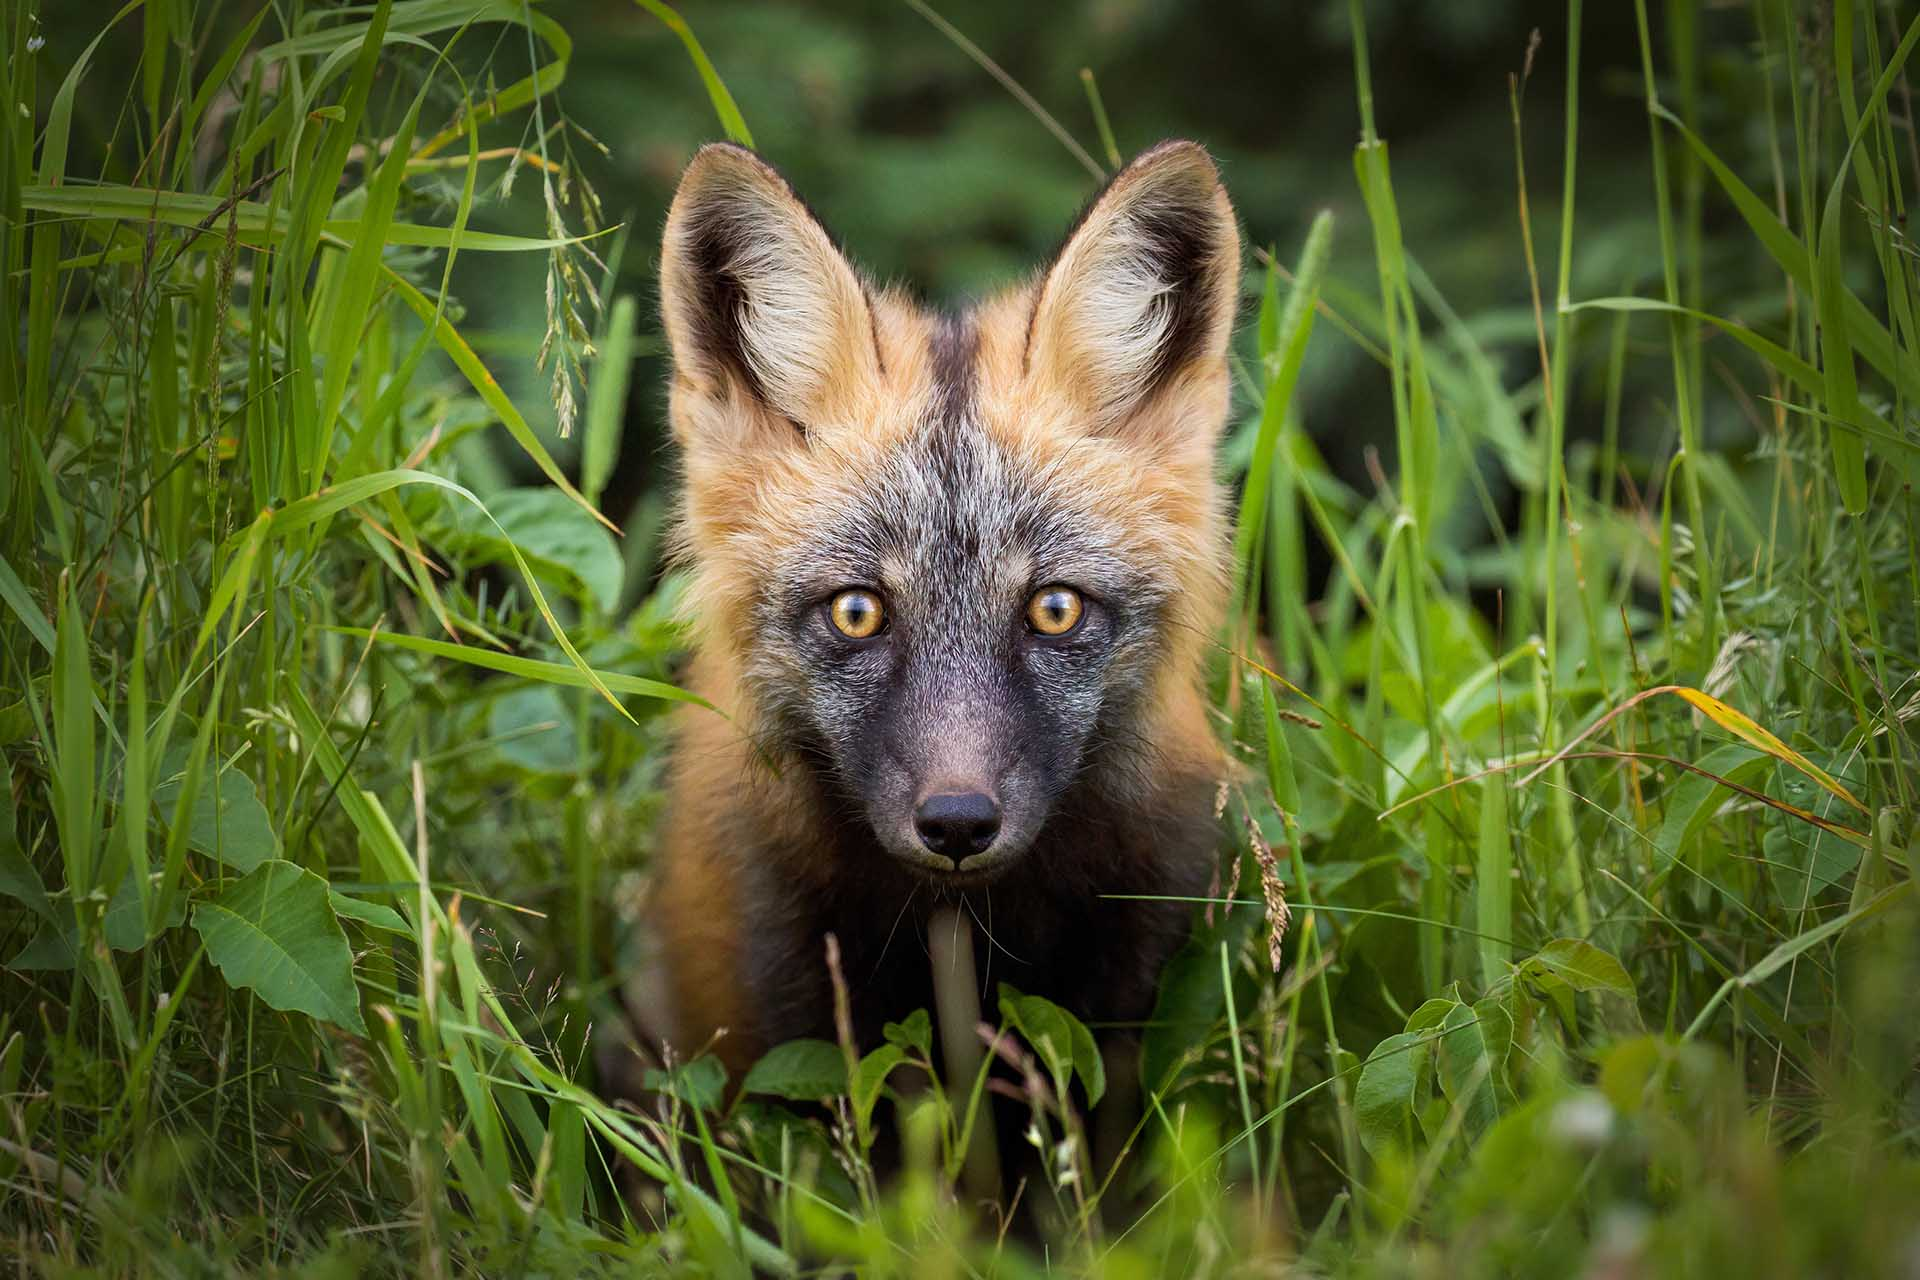 Cross Fox - vulpes vulpes - Brittany Crossman - Vulpes Vulpes - The Red Fox - Conjour Wildlife Photography Feature - 1